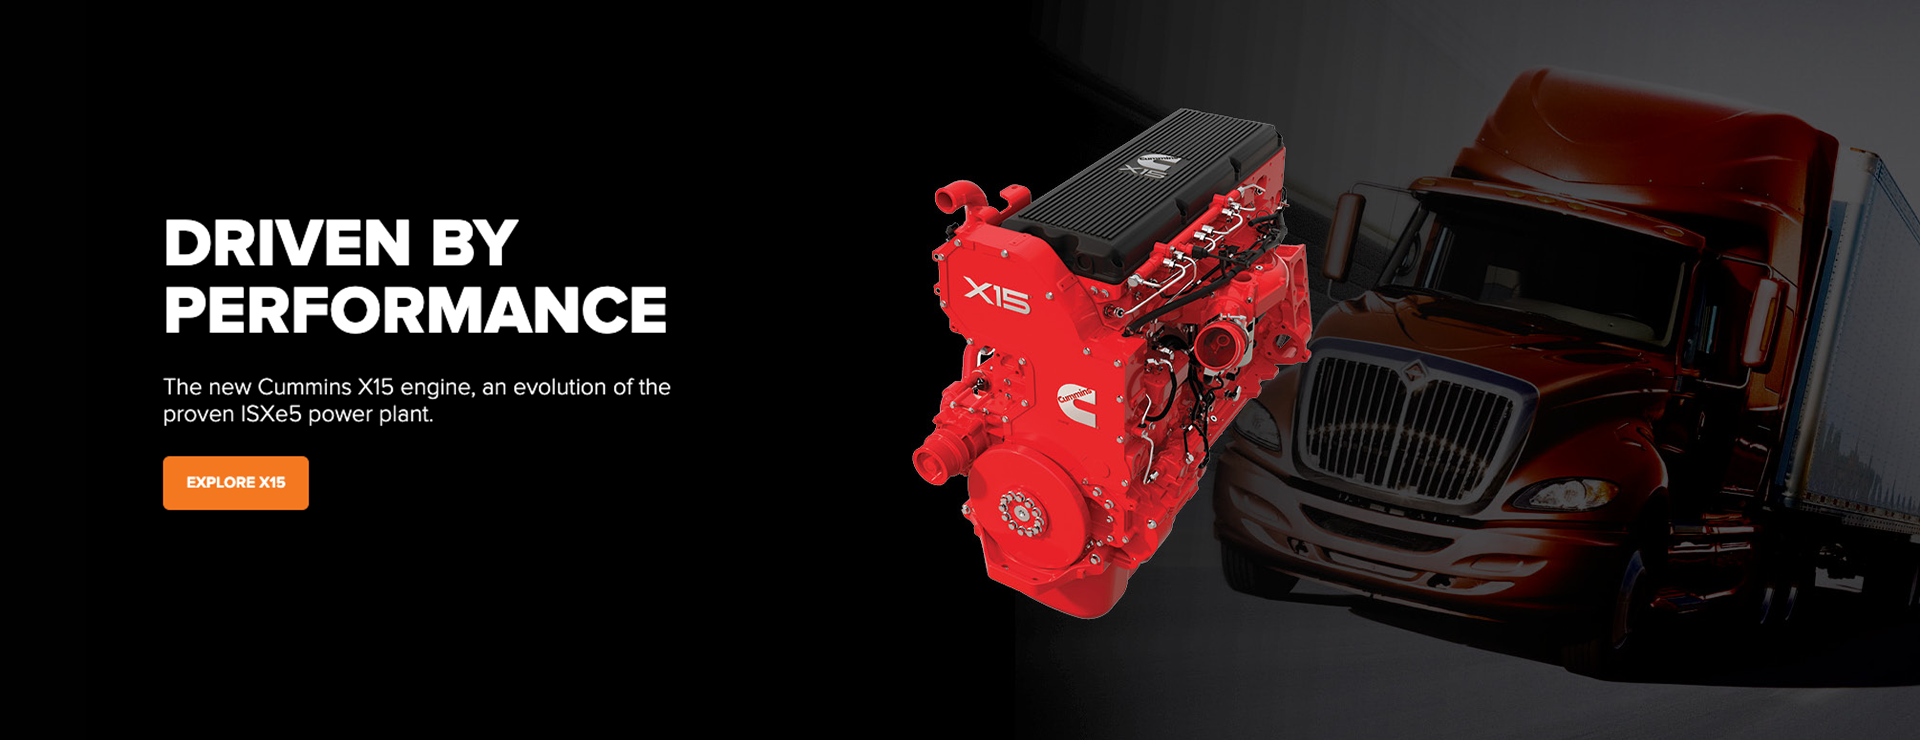 DRIVEN BY PERFORMANCE. The new Cummins X15 engine, an evolution of the proven ISXe5 power plant.